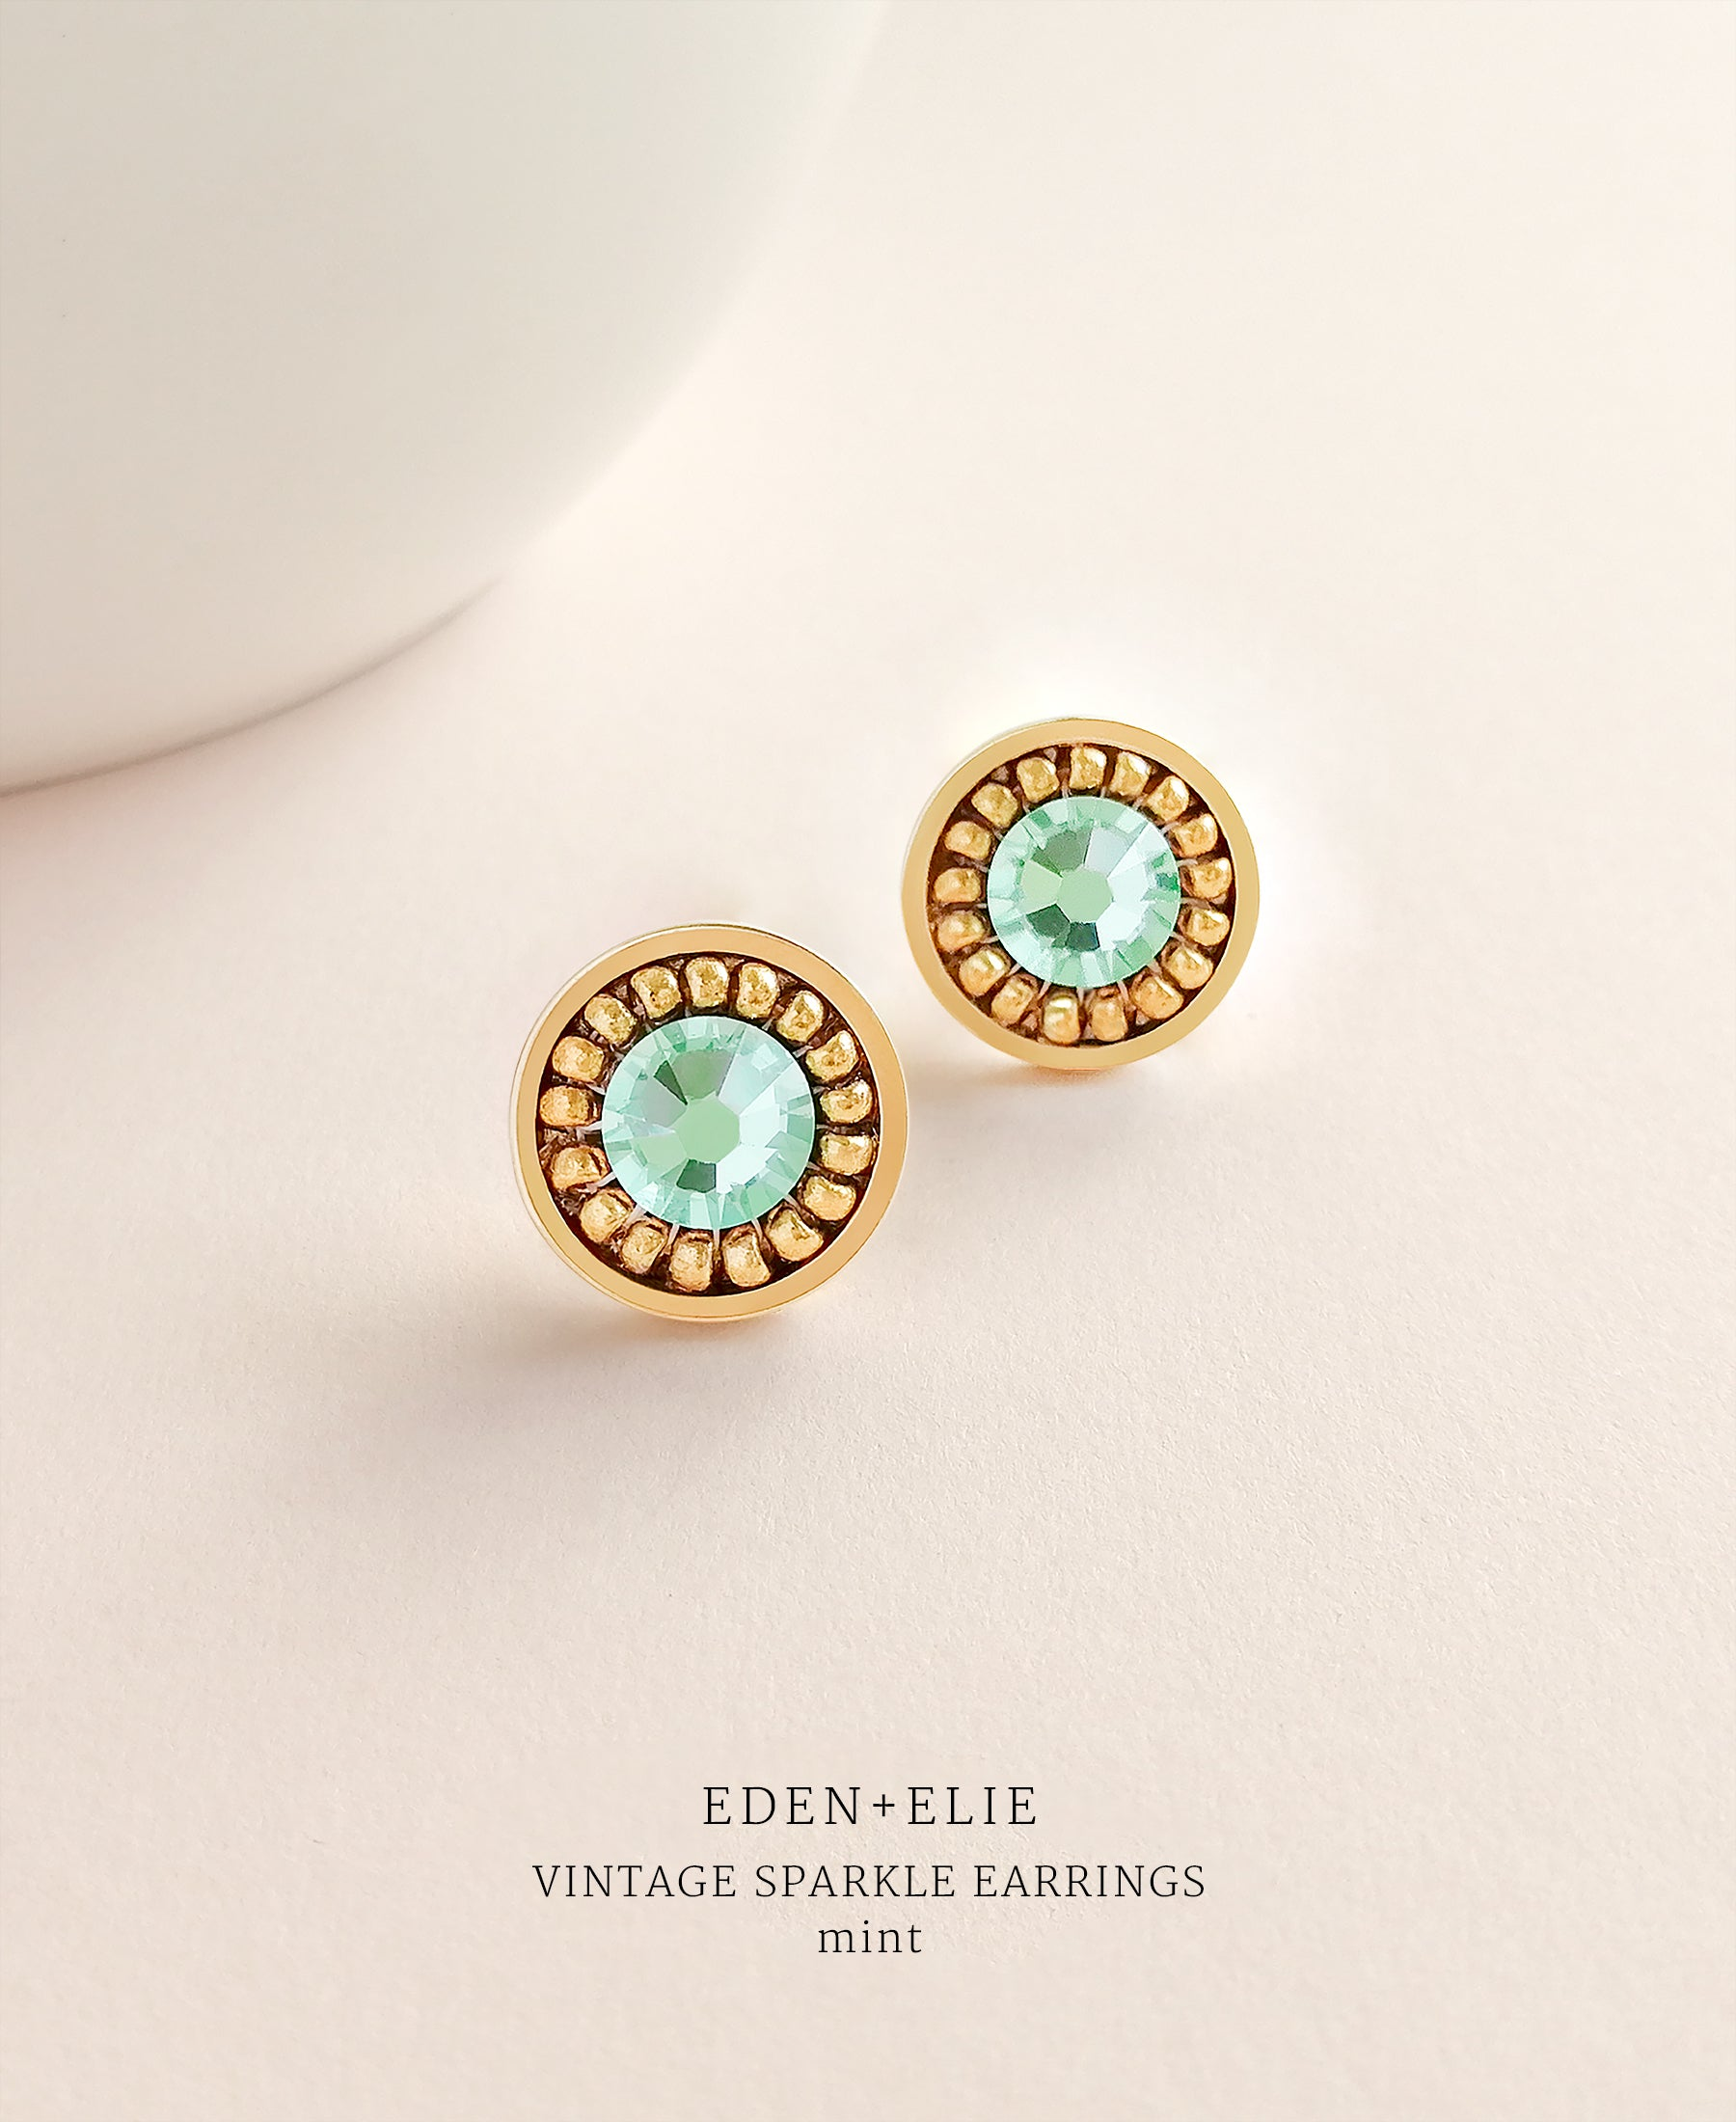 EDEN + ELIE gold plated jewelry Vintage Sparkle stud earrings - mint green